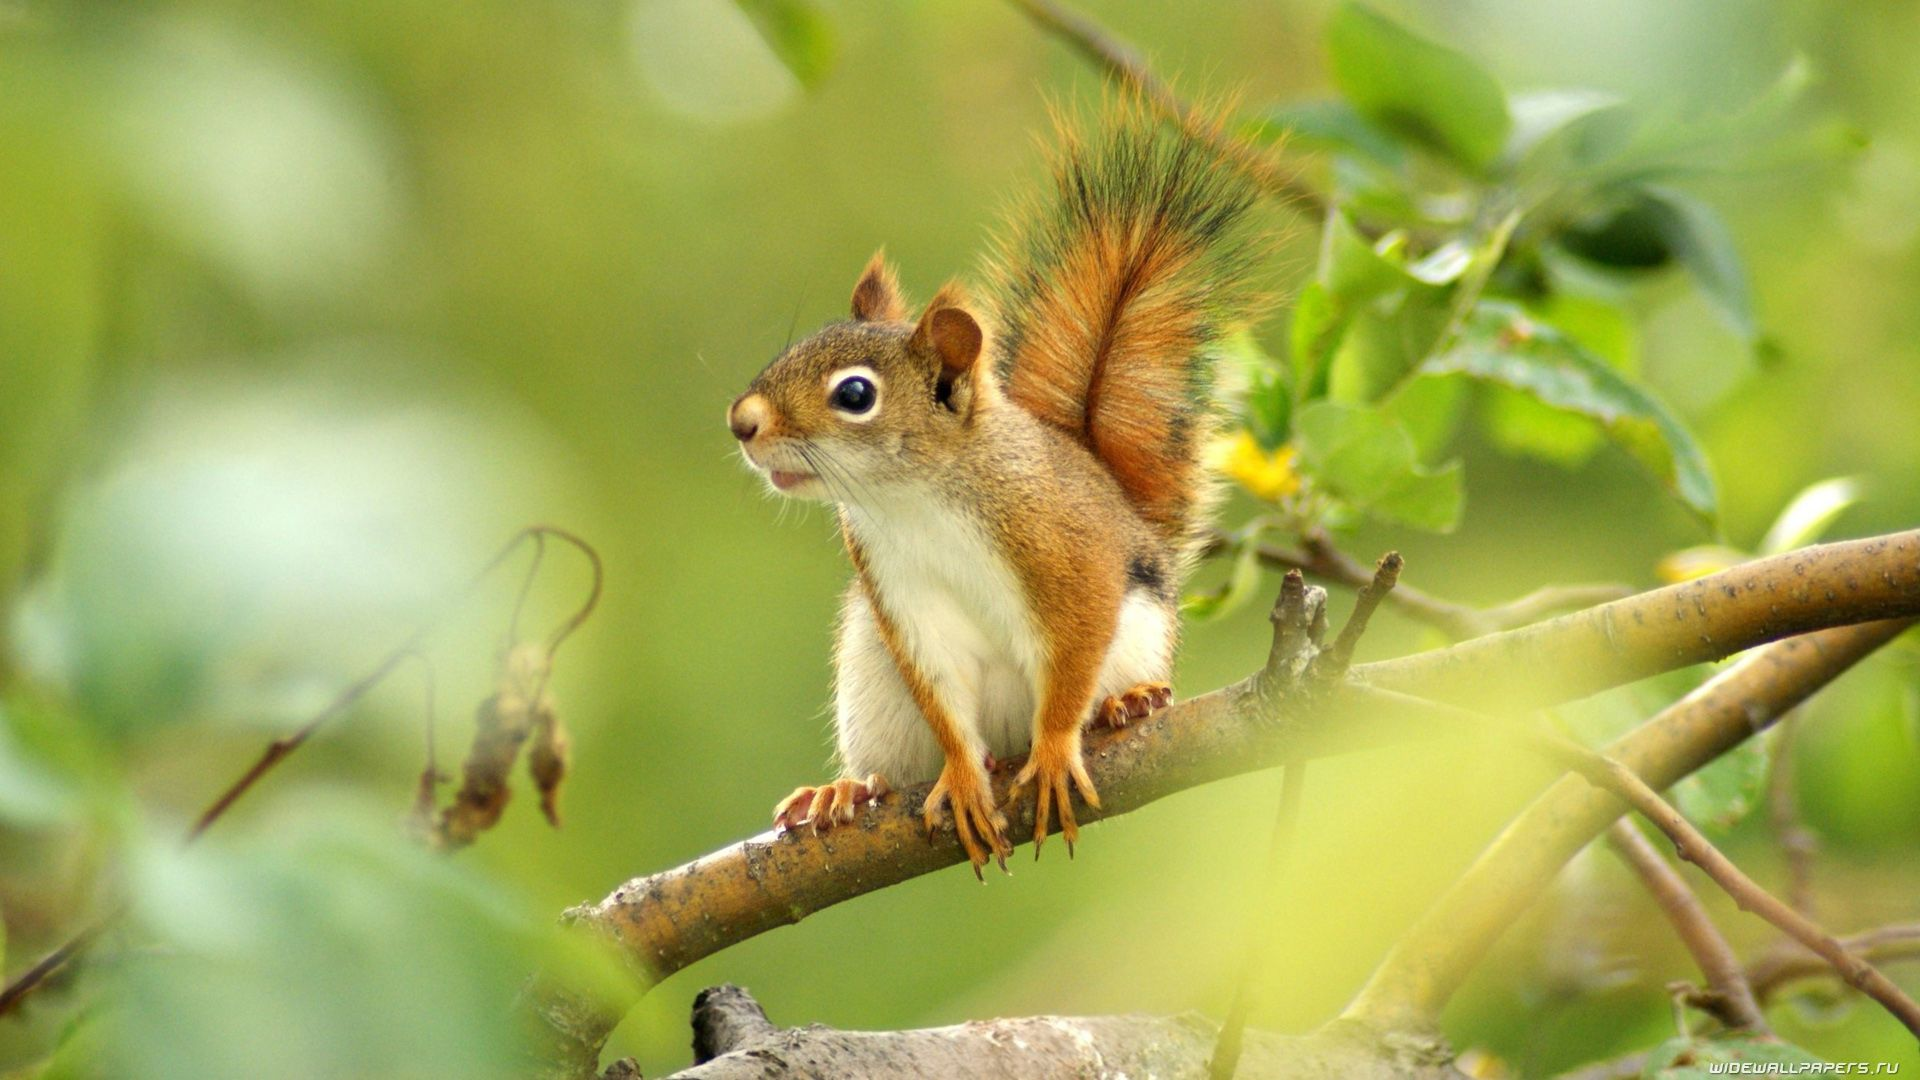 Squirrel In The Forest Wallpaper